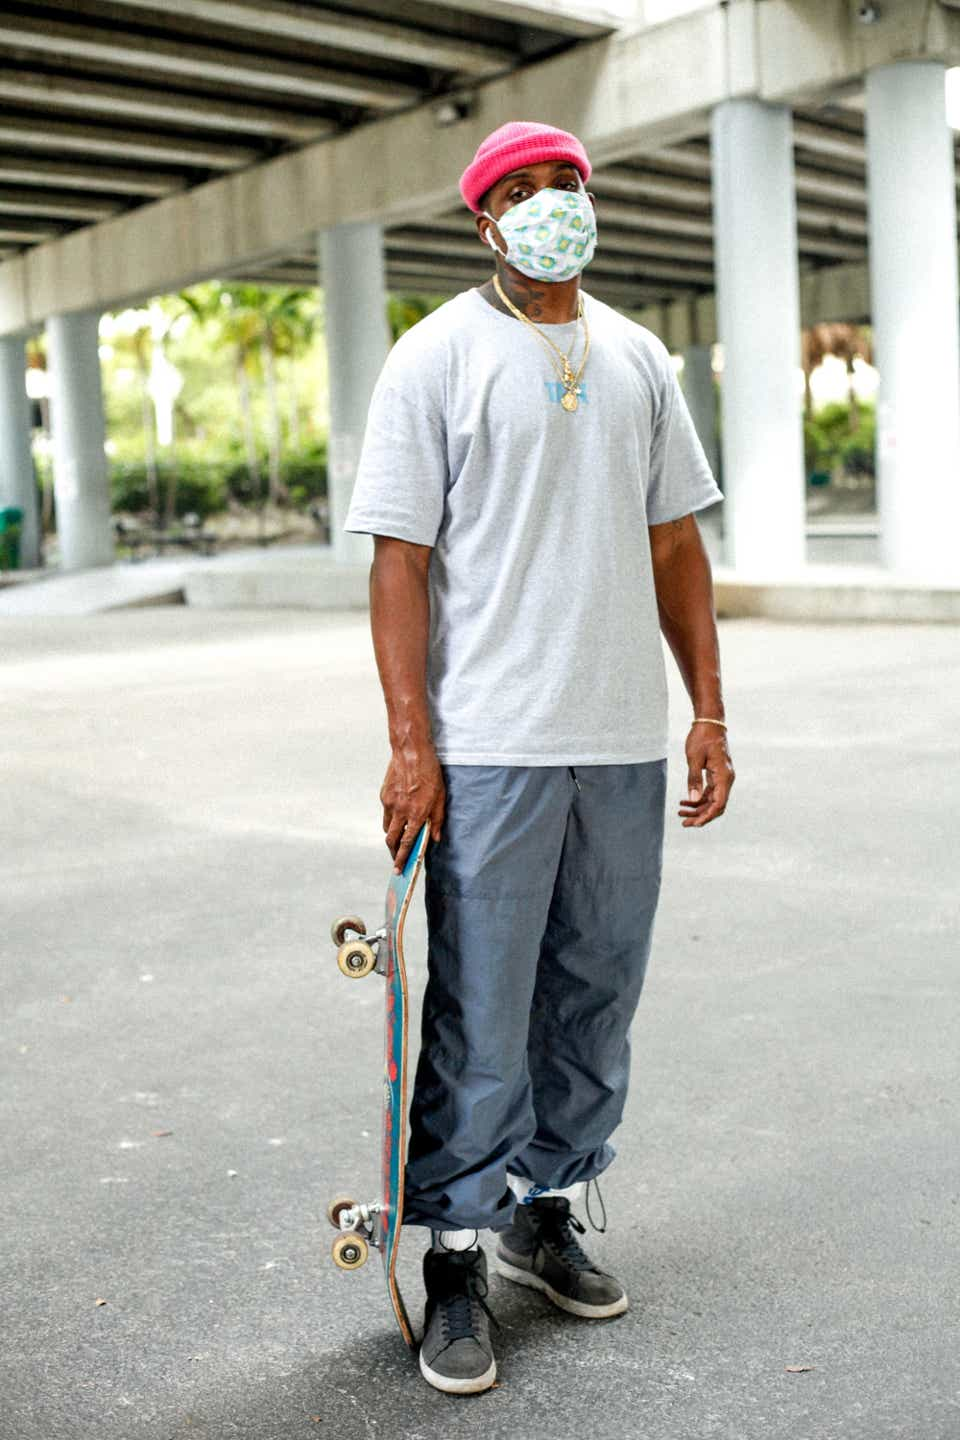 James is wearing a white graphic T-shirt, a pink beanie, gray track pants, and gray sneakers. He's wearing a surgical mask and has his skateboard by his side.